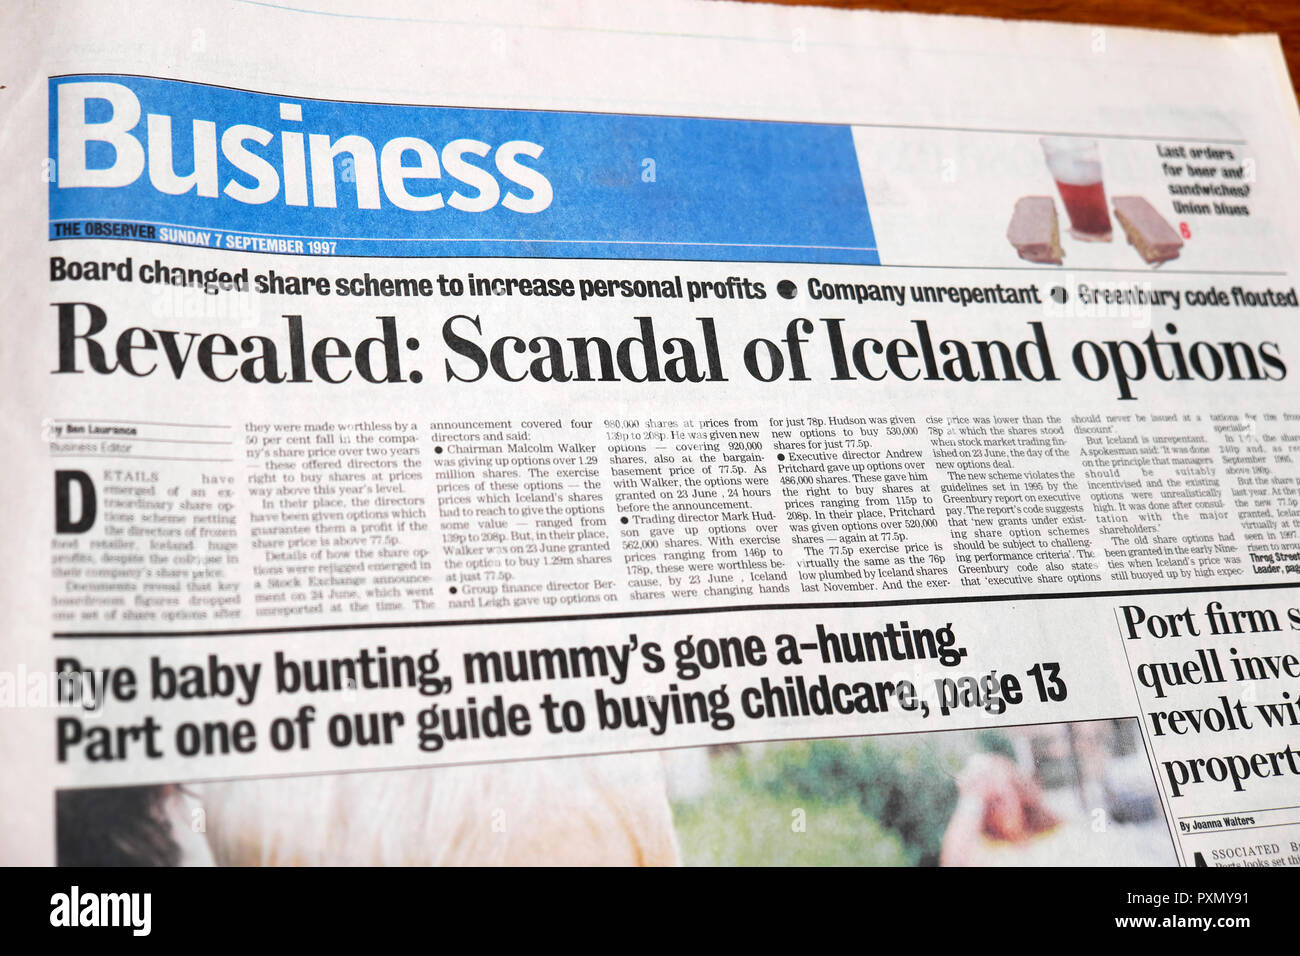 'Revealed: Scandal of Iceland options'  newspaper article in the business section of The Observer  UK September 1997 - Stock Image